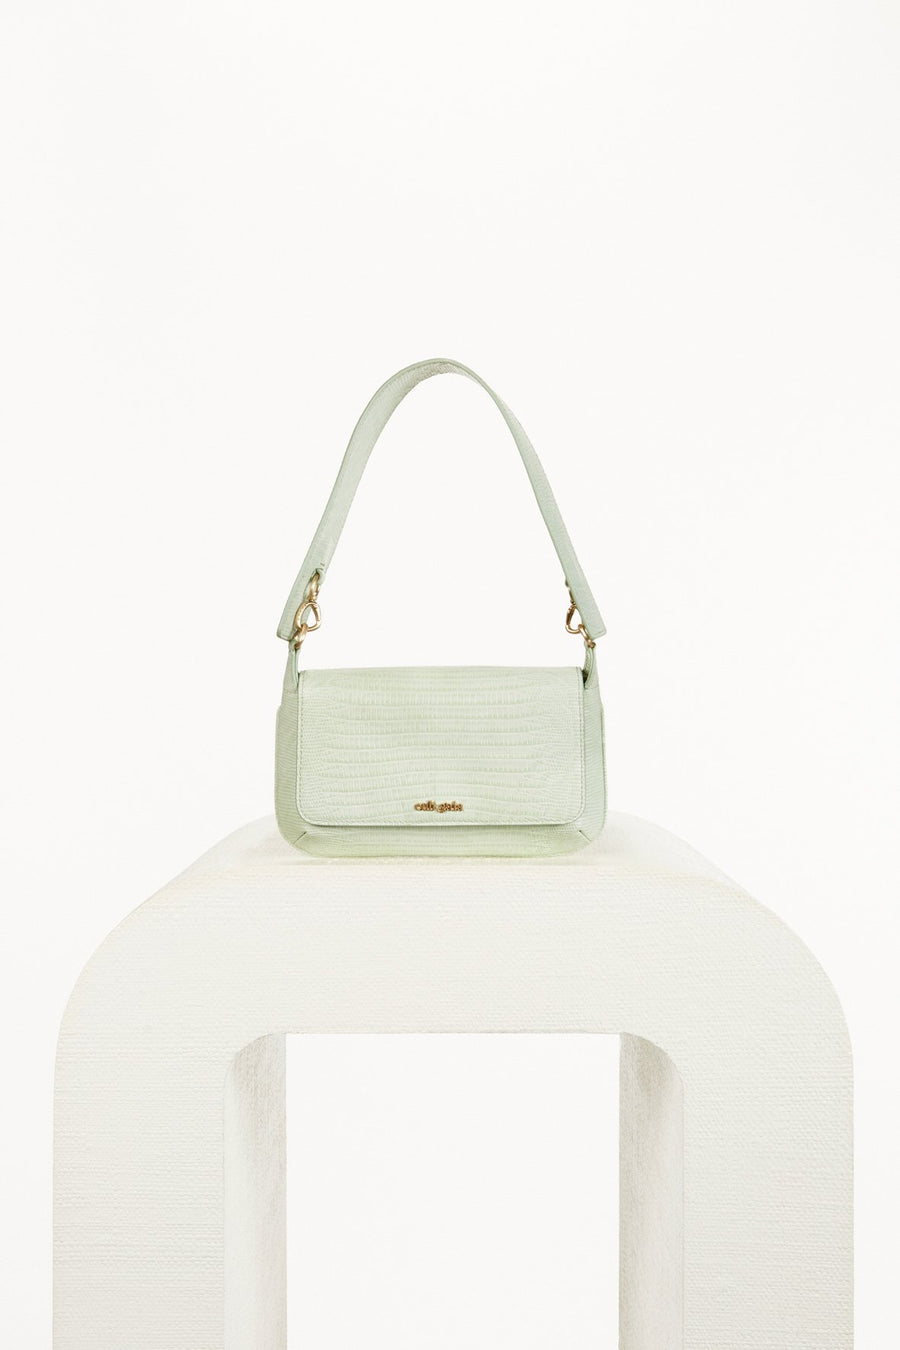 DAMARA SHOULDER BAG - MINT